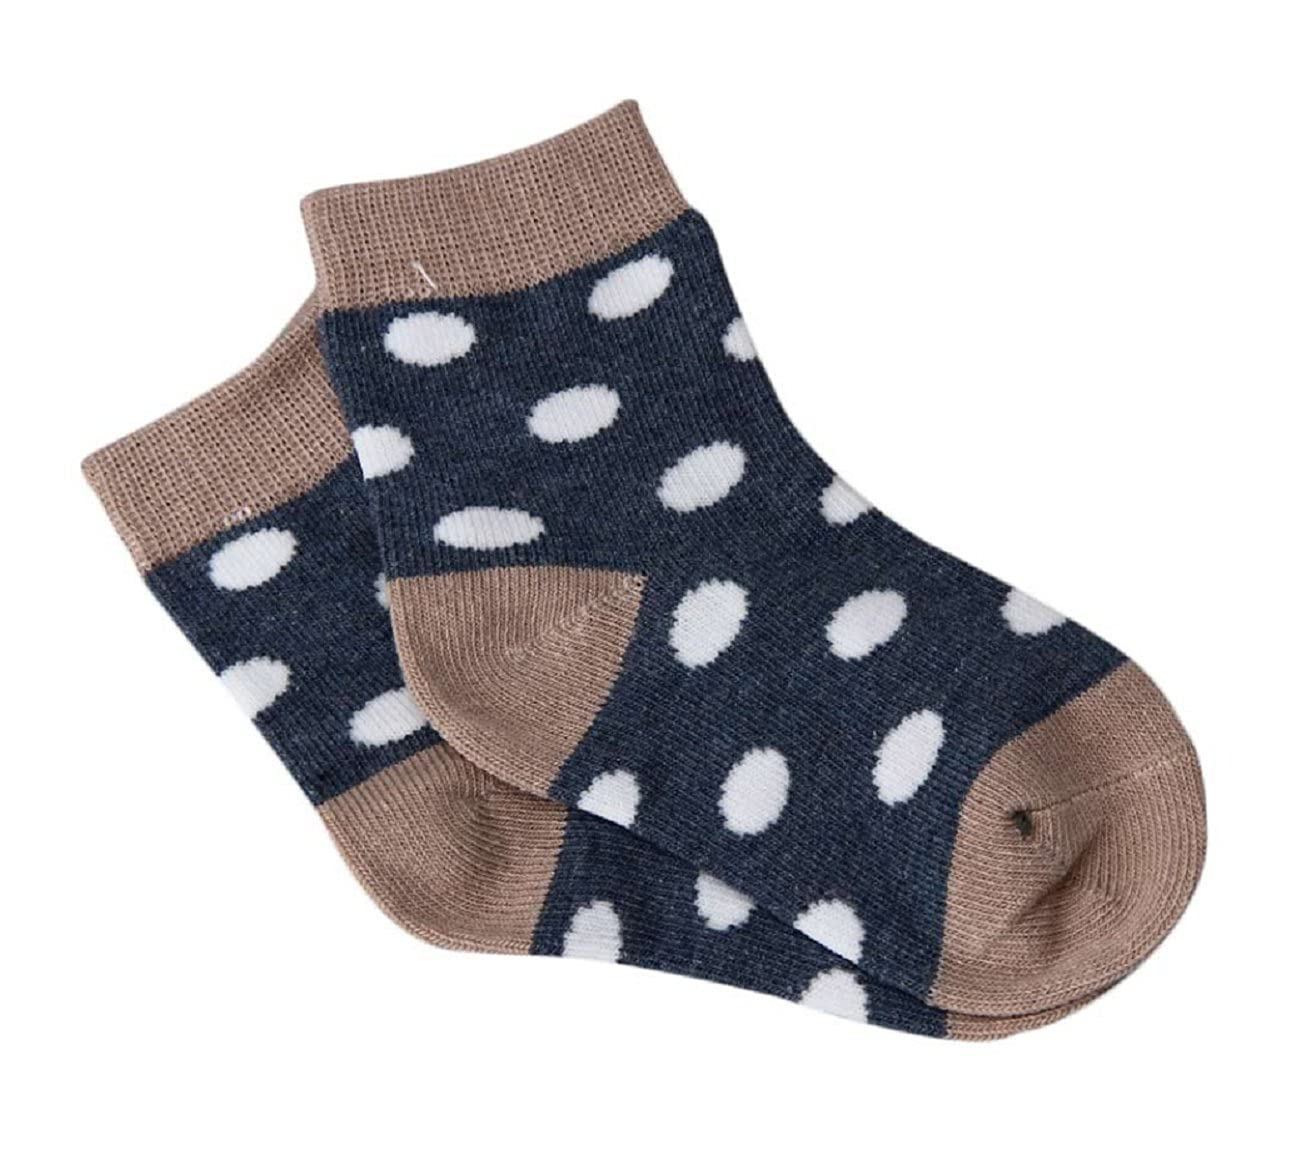 4 Pairs Striped Socks Baby New Born Boy Girl Casual Winter Infant Hot sale